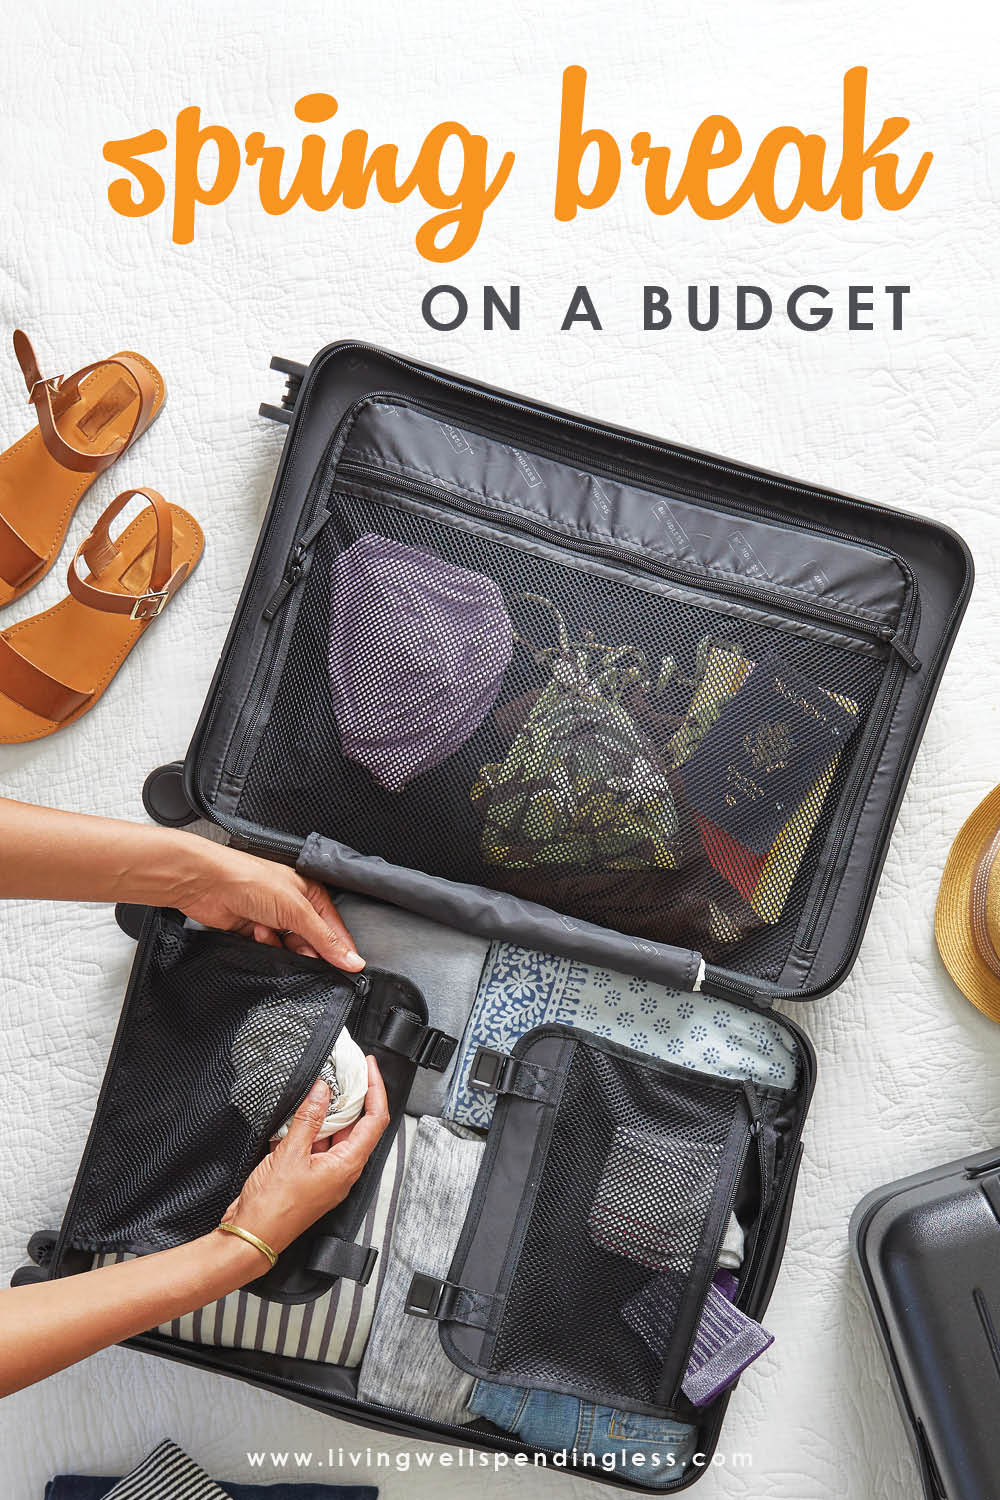 Want to plan an awesome spring break but not sure if your budget can handle it? Don't miss these smart tips for planning an awesome spring break getaway or staycation that won't break the bank or have you going into debt. Awesome ideas that get the whole family involved! #vacation #vacationtips #springbreak #budgeting #budgettips #budget #staycation